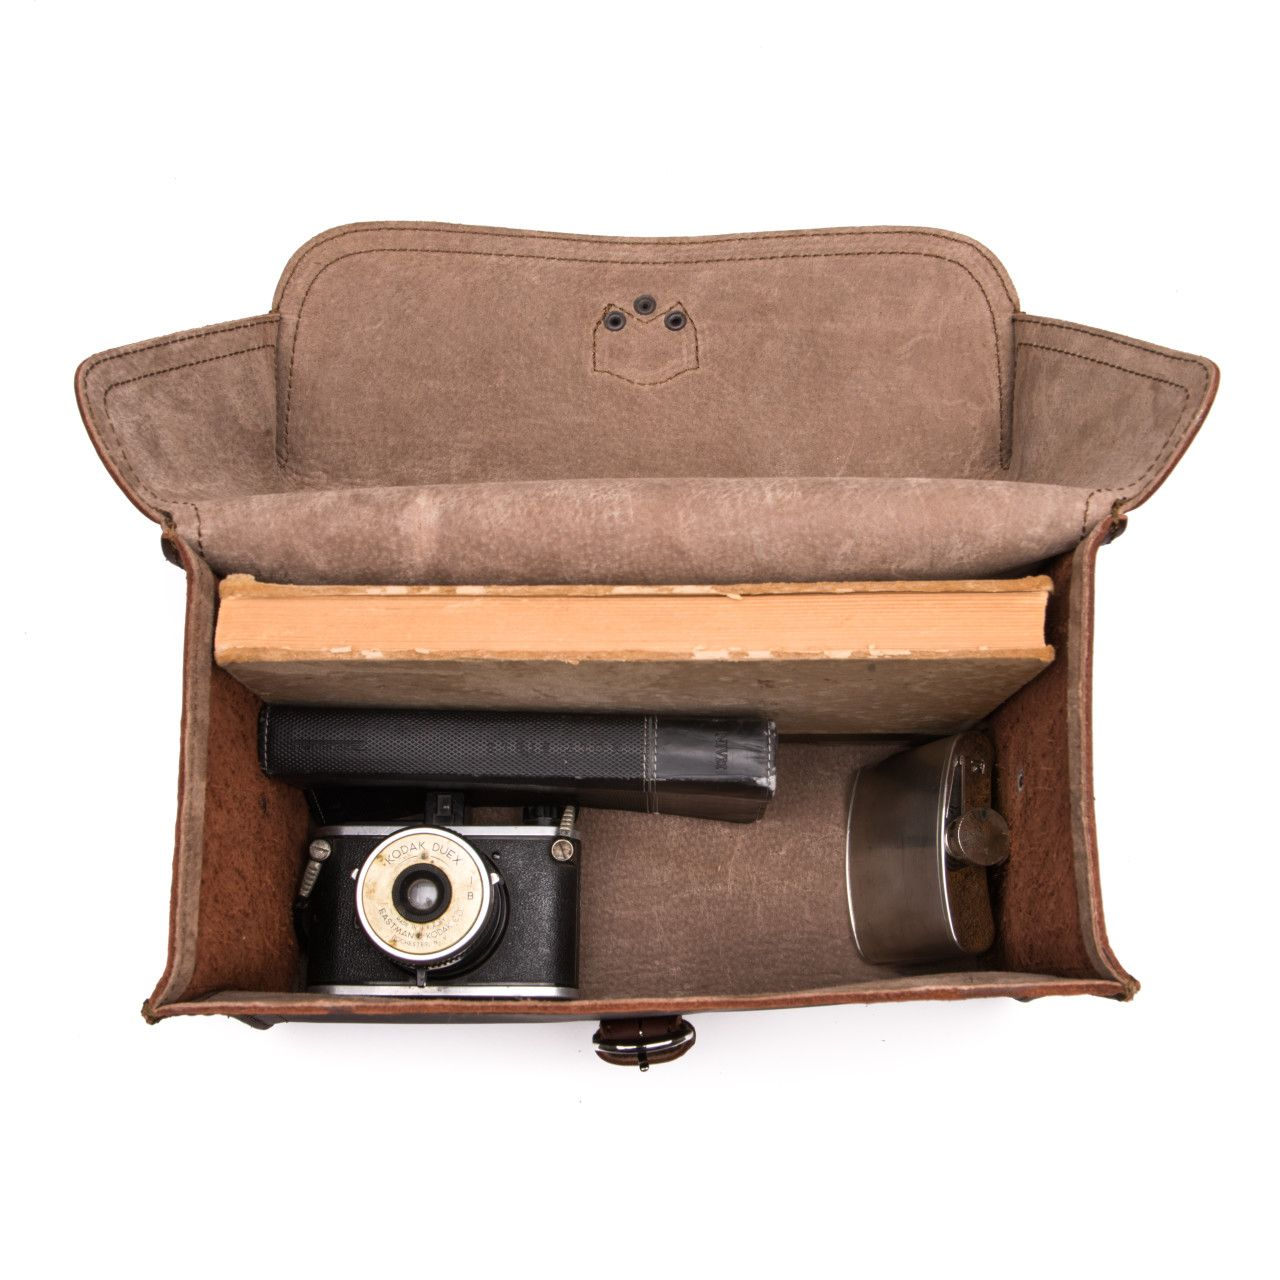 For your most valuable souvenirs suitcase will be leather gadget bag large in chestnut leather